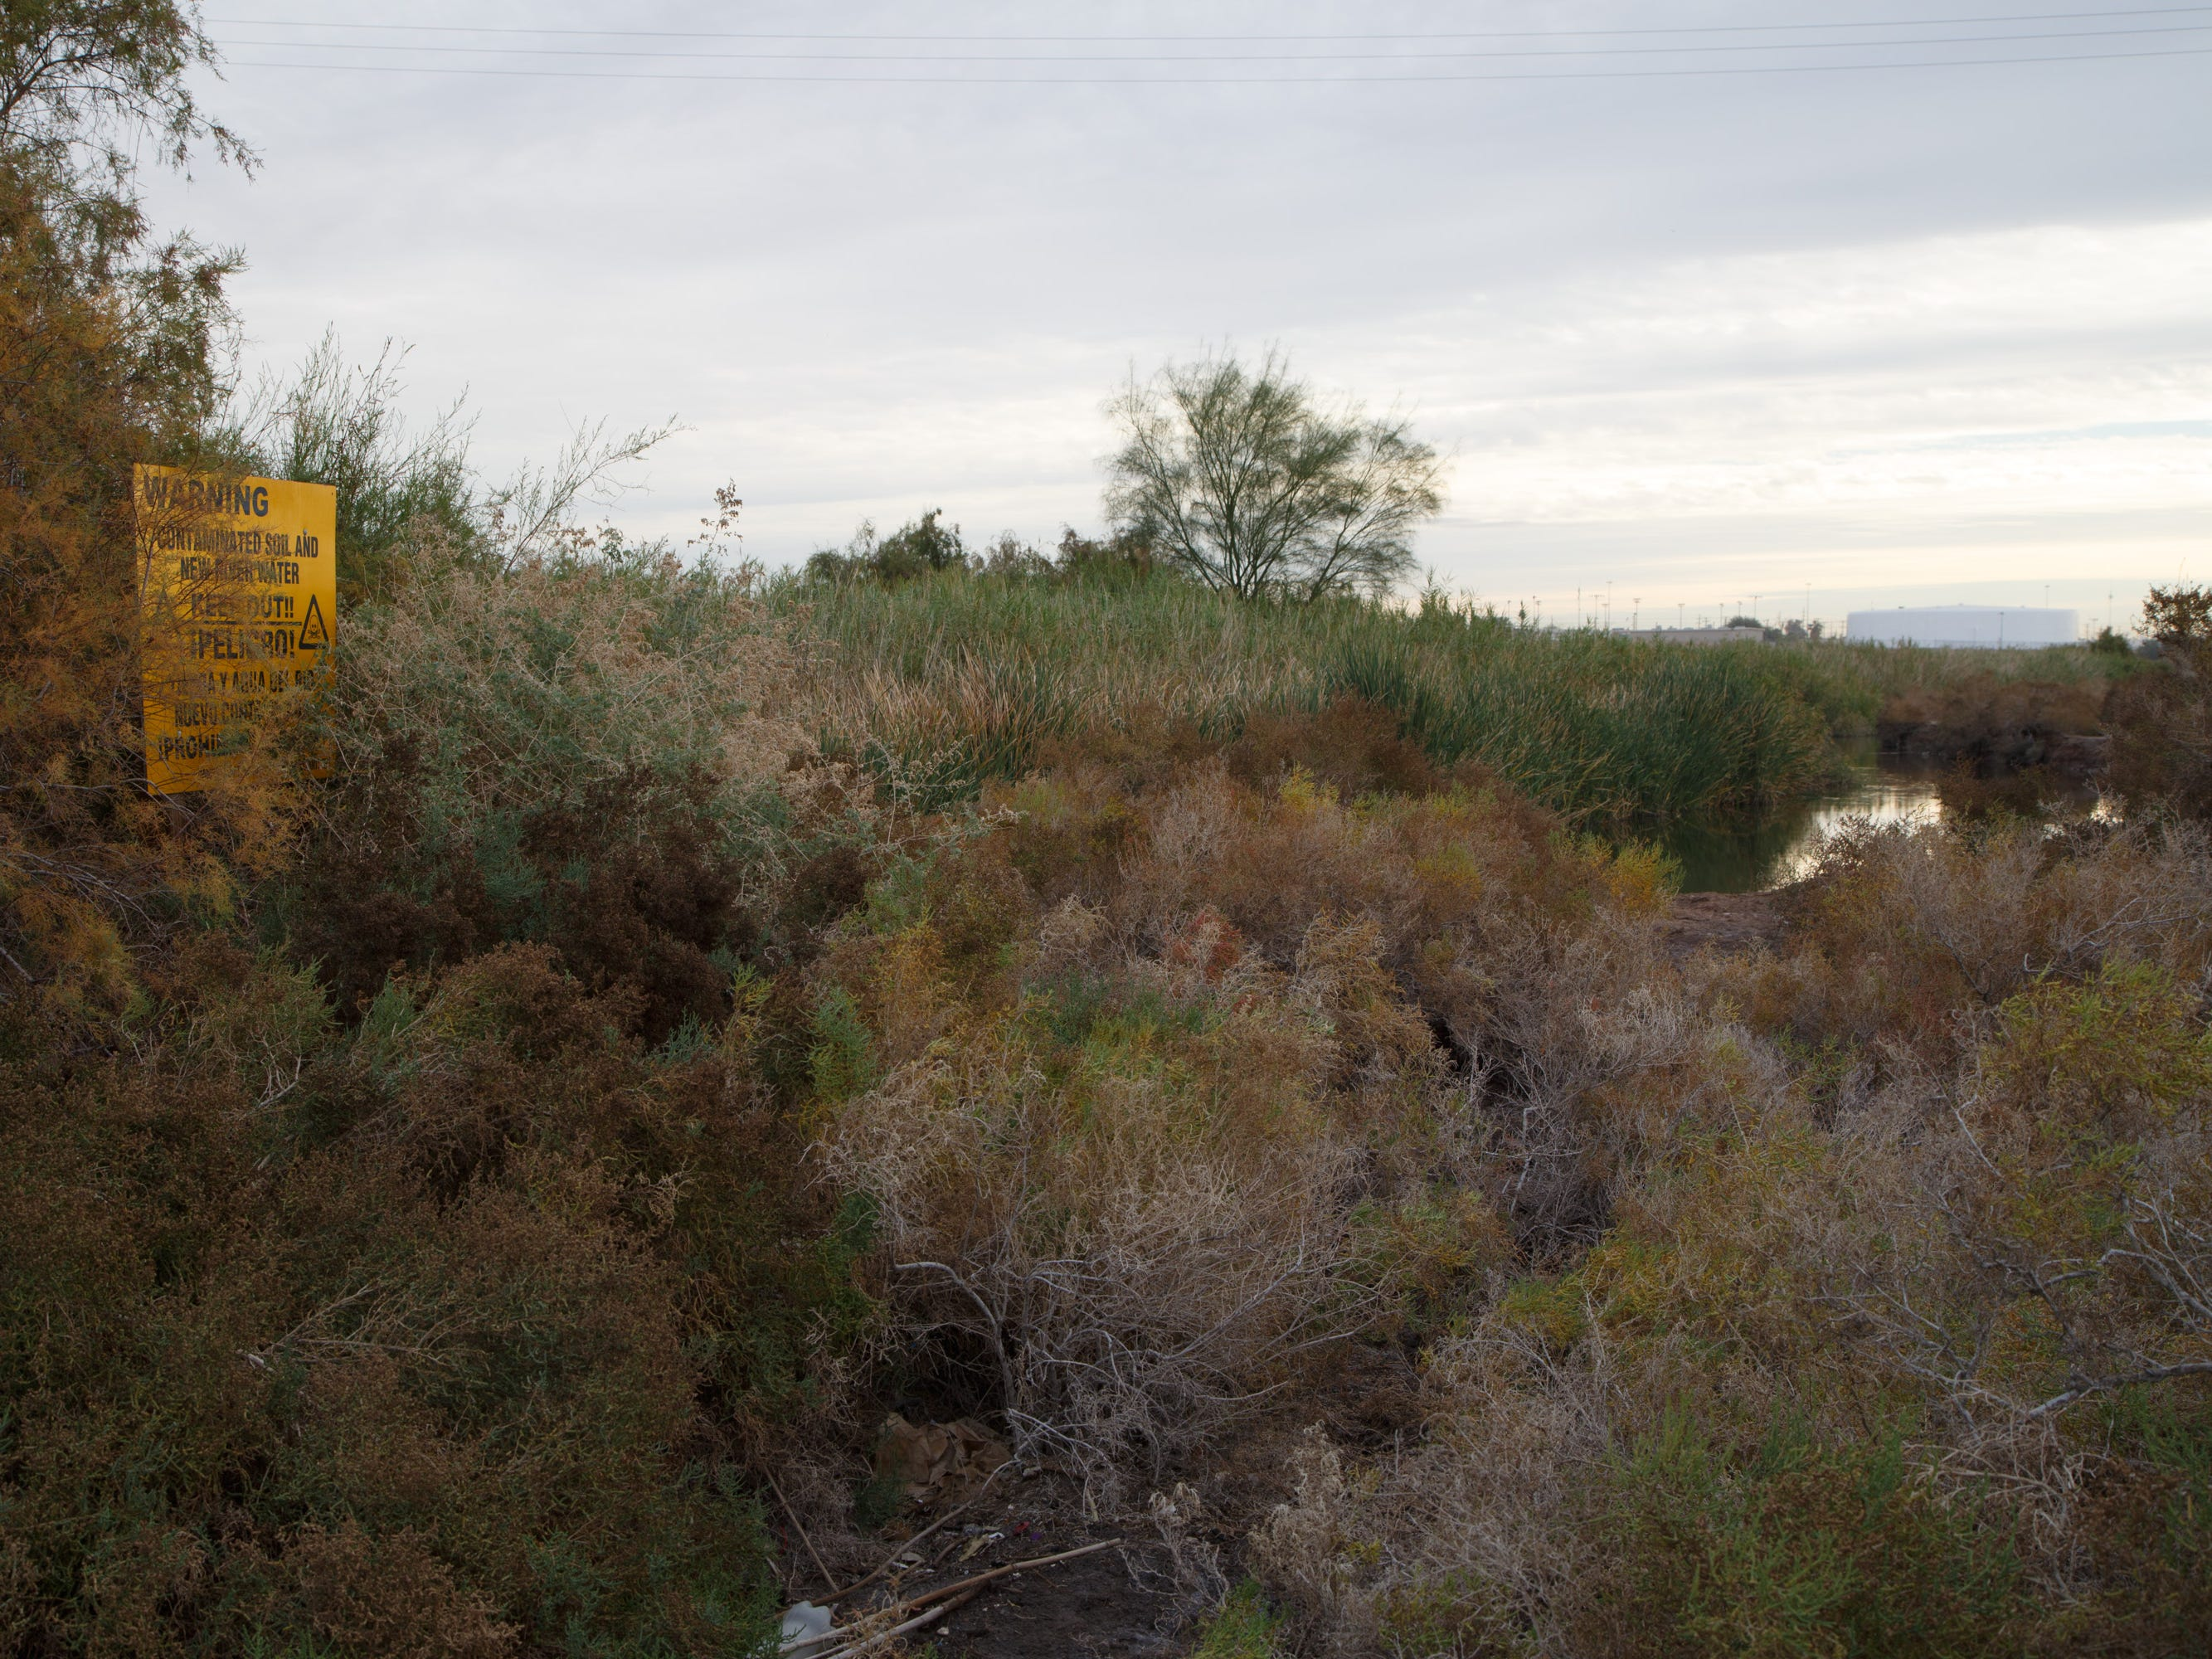 A sign beside the New River warns that the soil and water are contaminated and that people should keep out.